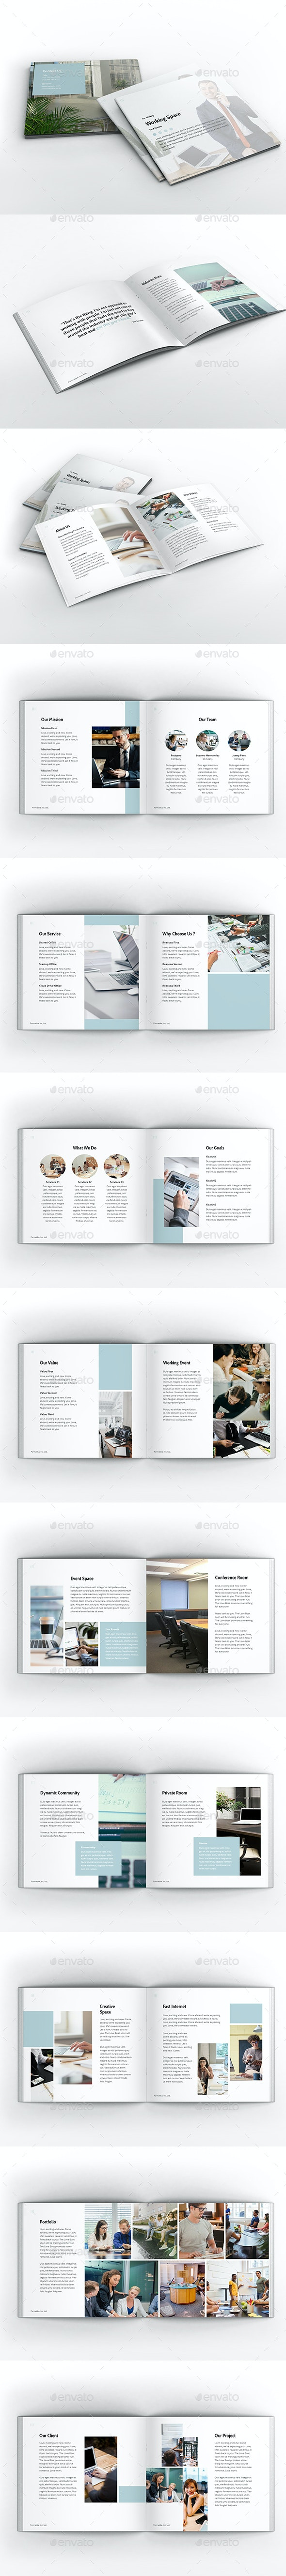 Working Space Square Brochure Template - Brochures Print Templates